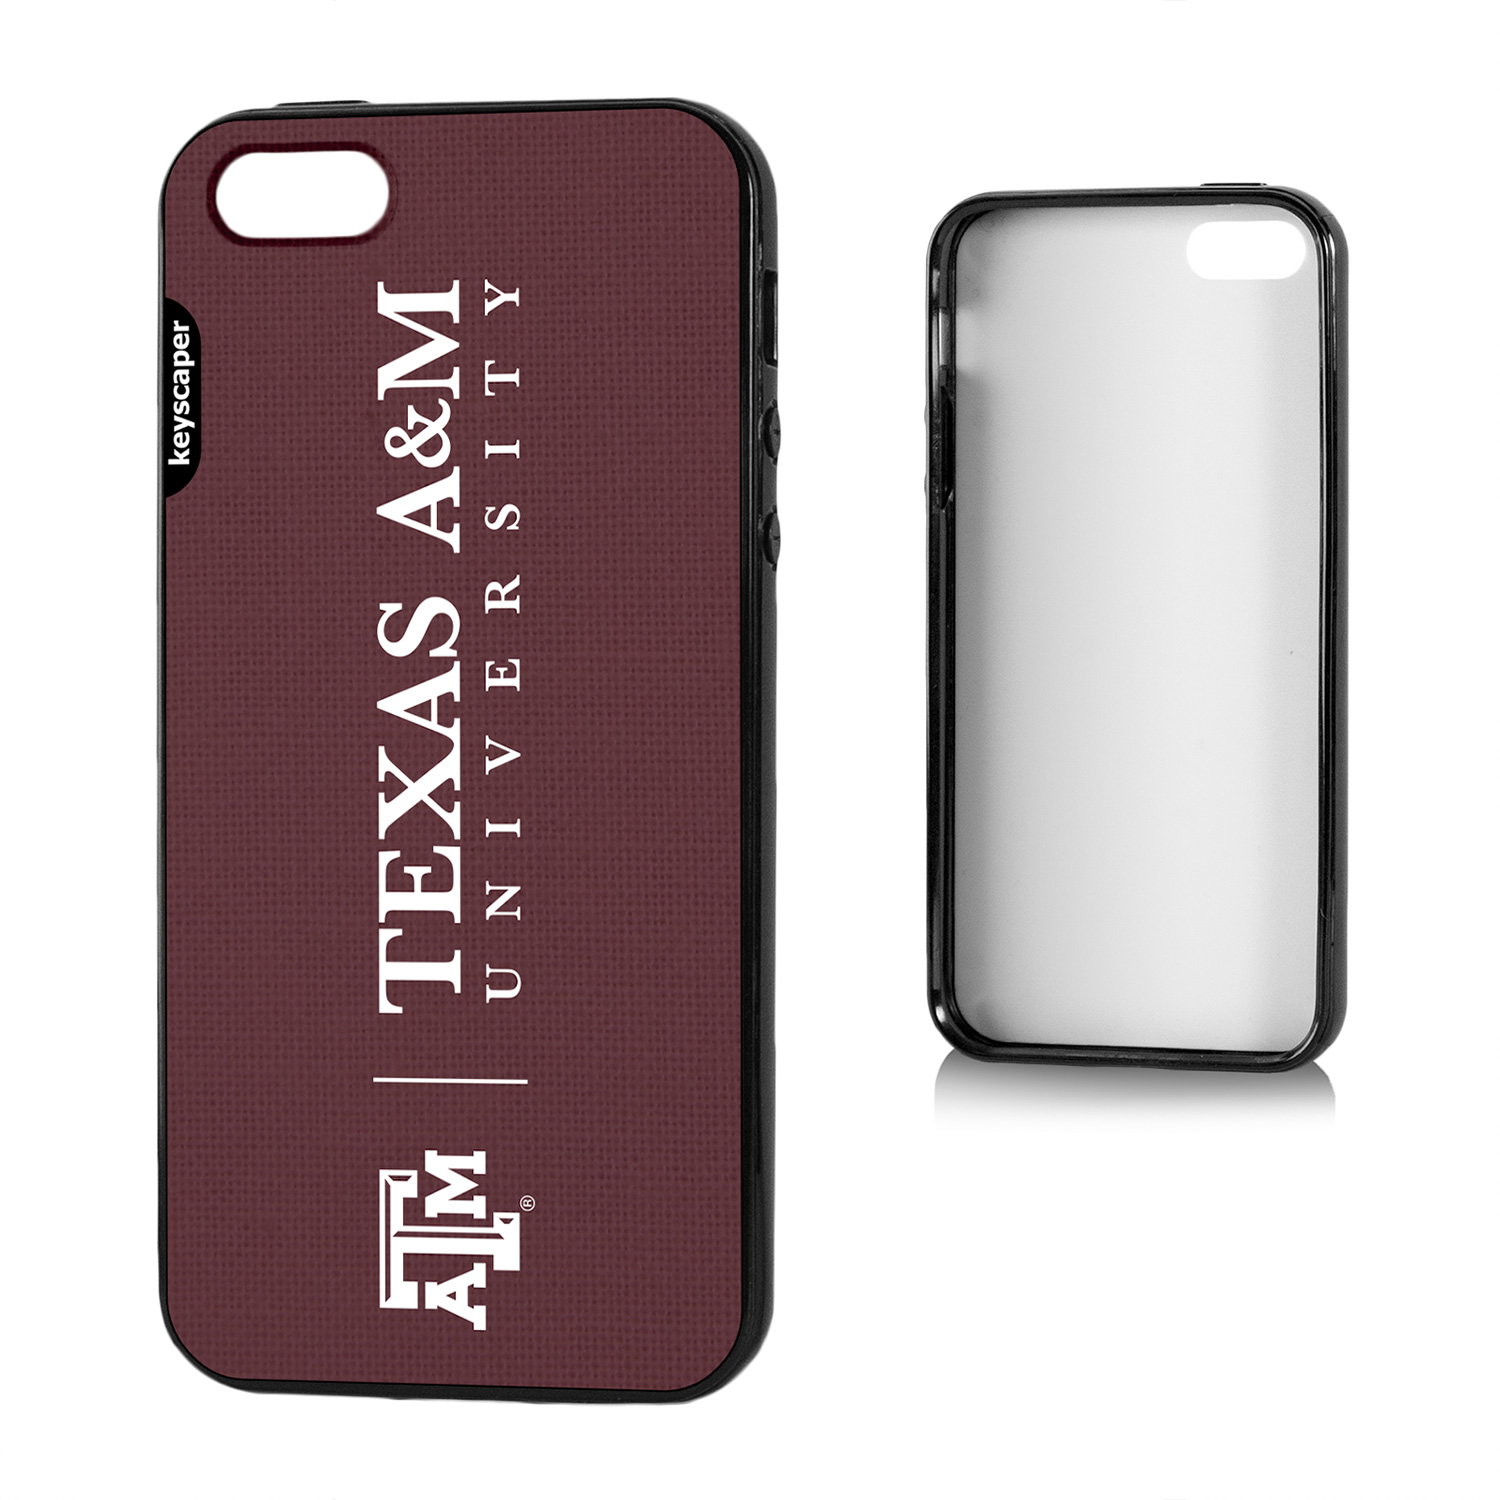 Texas A&M Aggies iPhone 5 and iPhone 5s Bumper Case